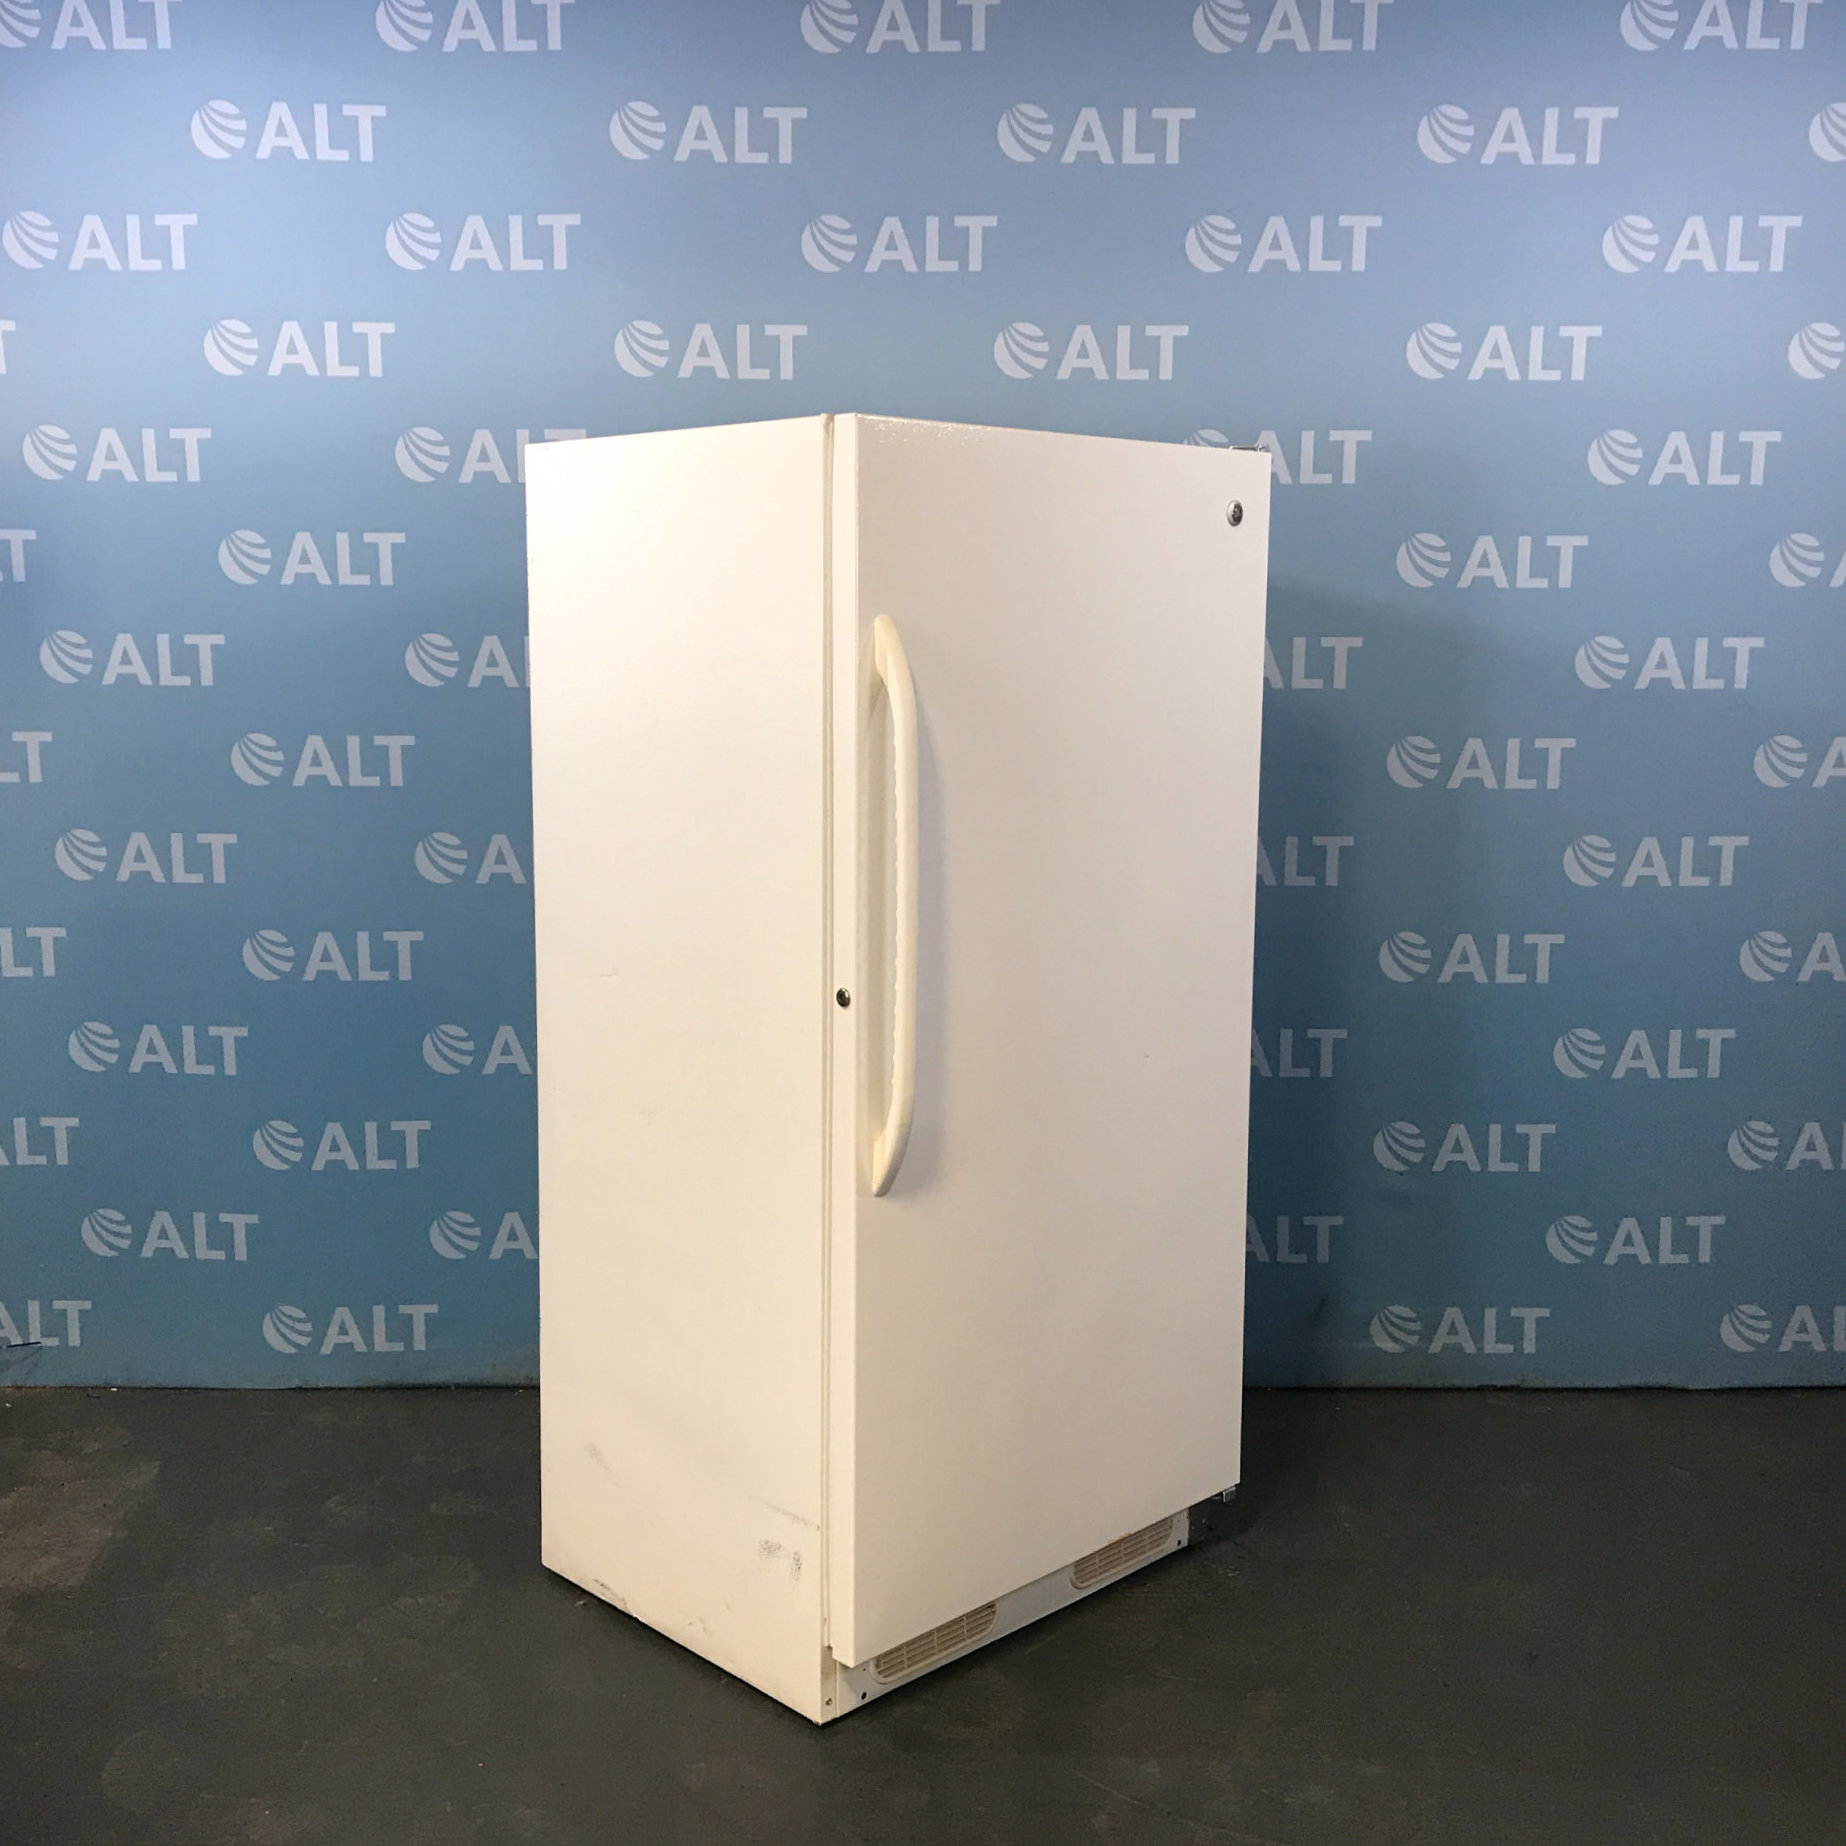 General Electric Upright Freezer Model FUM17DTCRWH Image